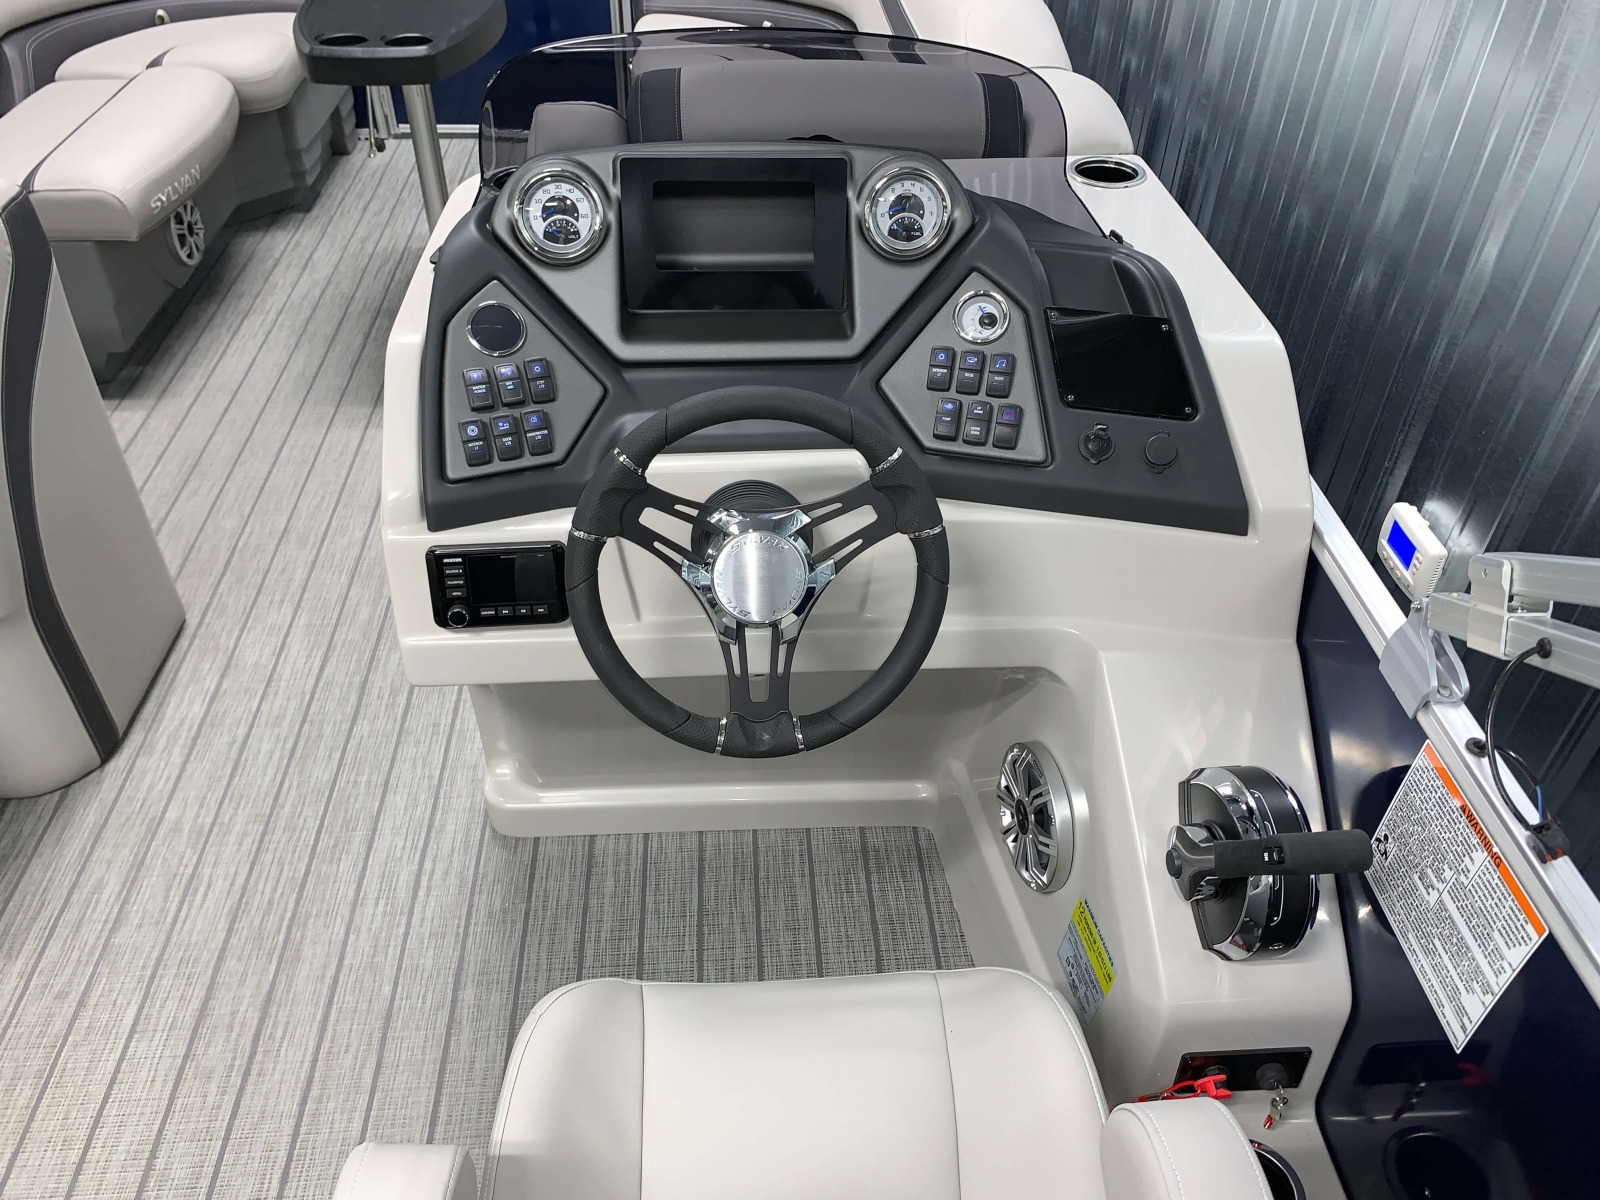 Drivers Console of the 2022 Sylvan L3 Party Fish Pontoon Boat